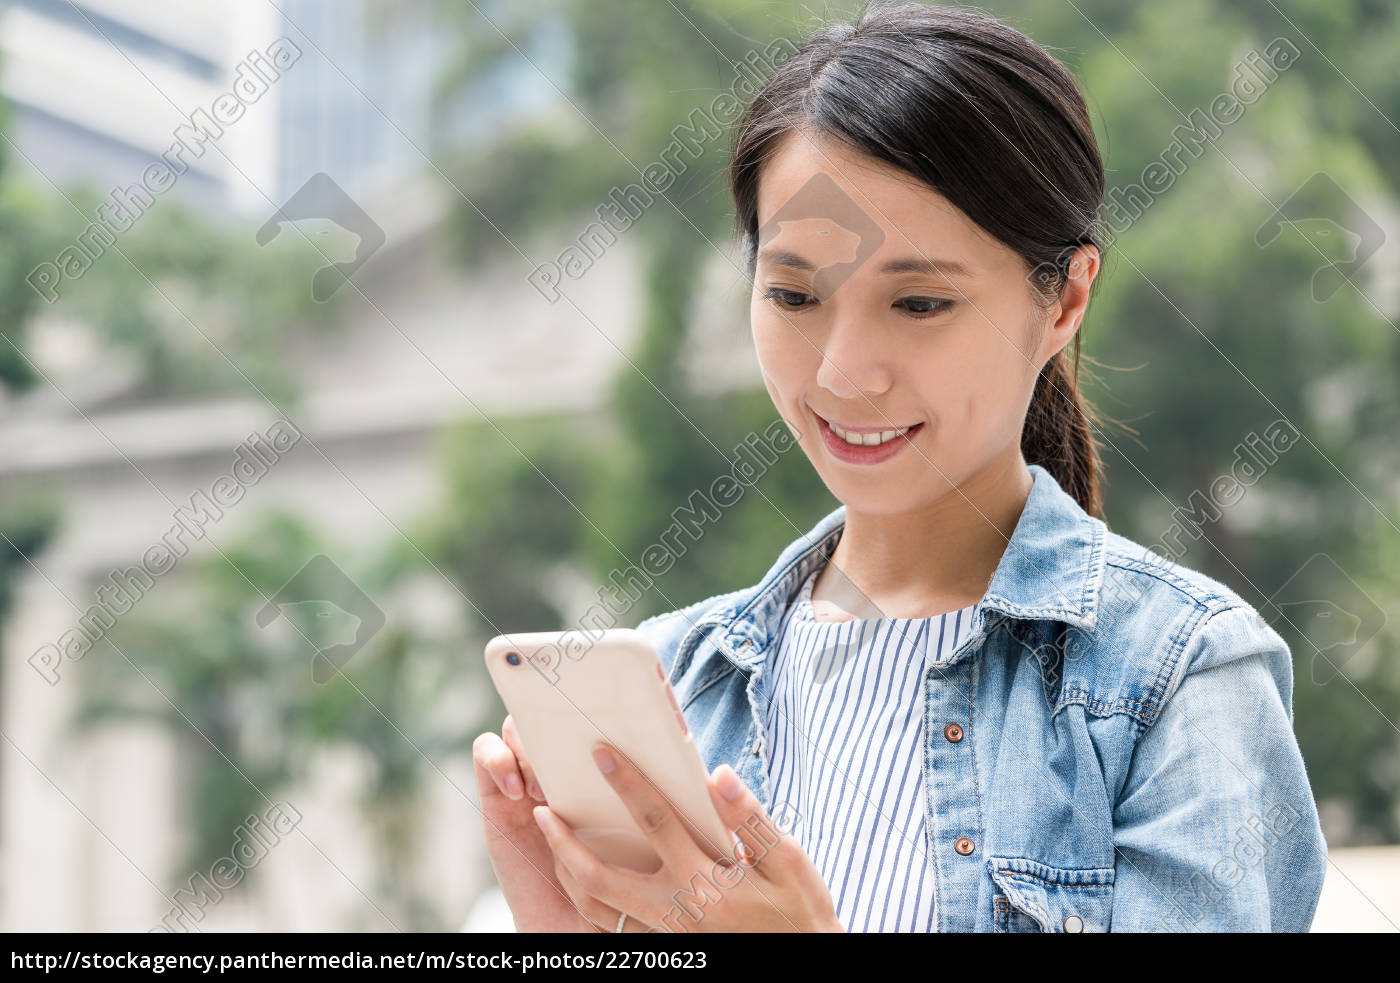 woman, looking, at, mobile, phone - 22700623